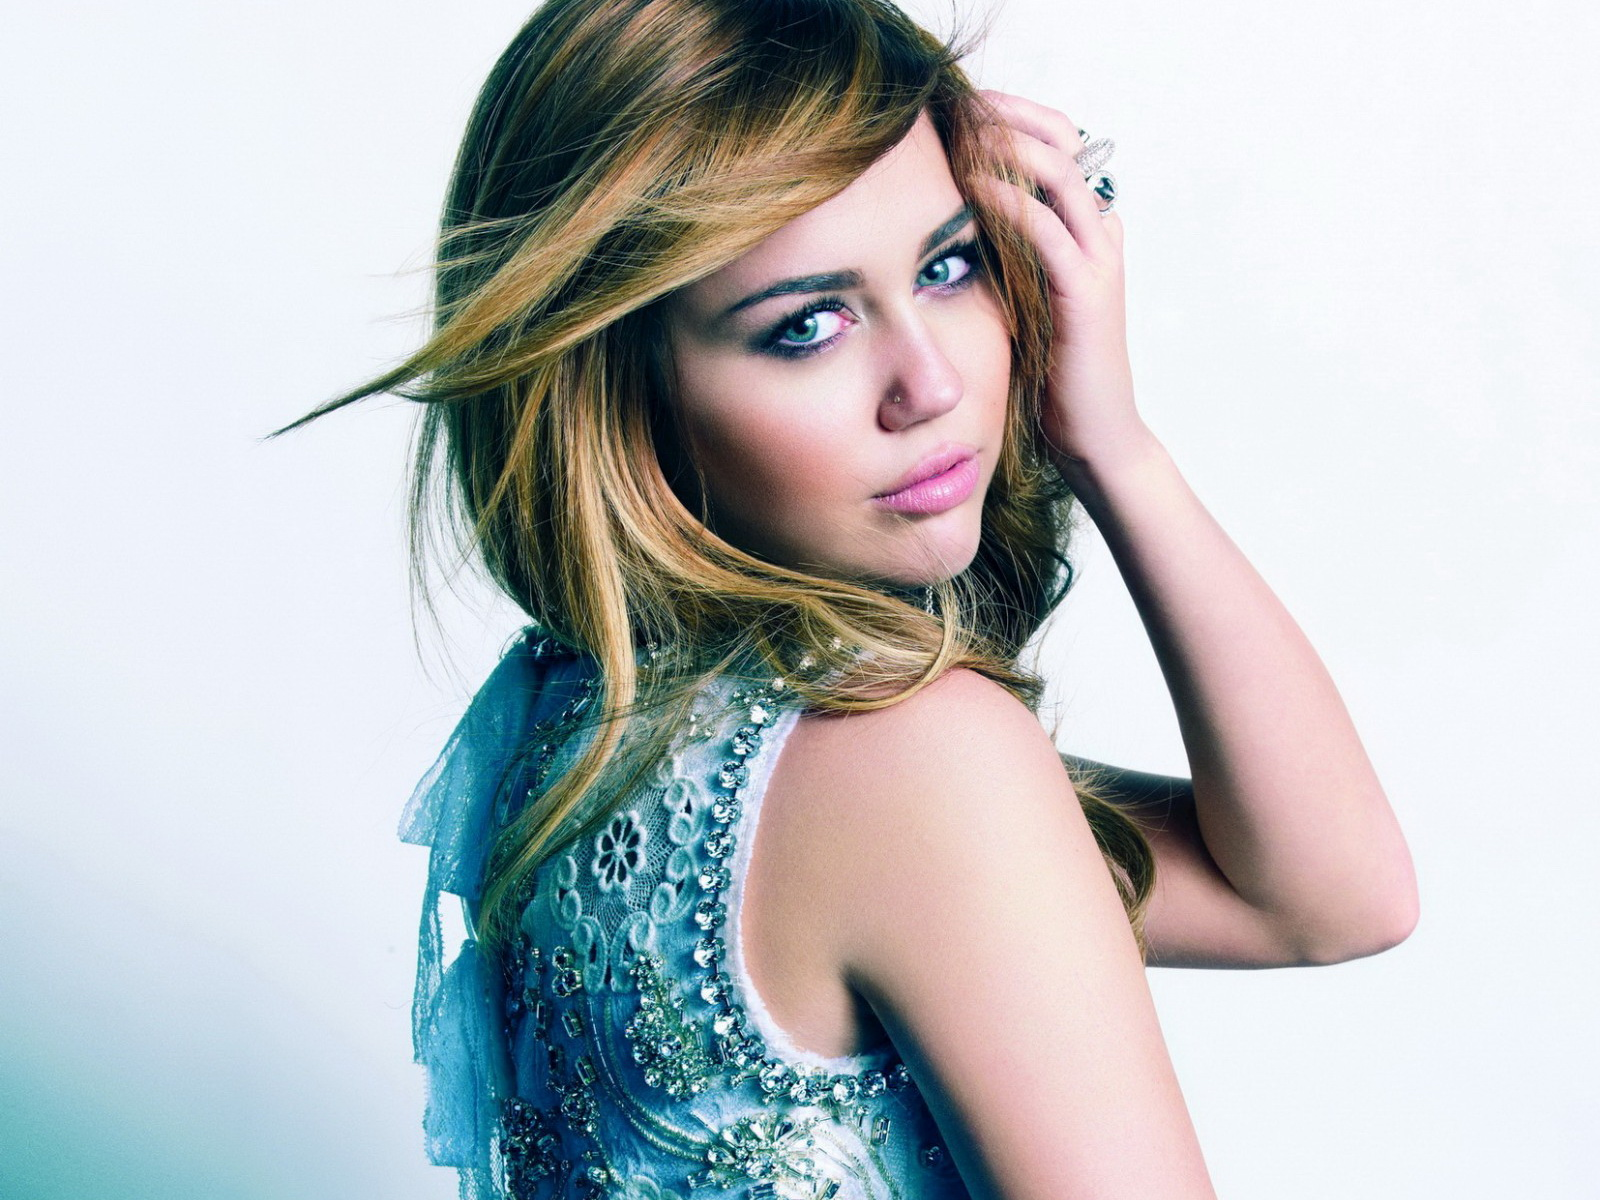 Miley Cyrus New Hd Wallpapers 2013  World Of Hd Wallpapers-1616